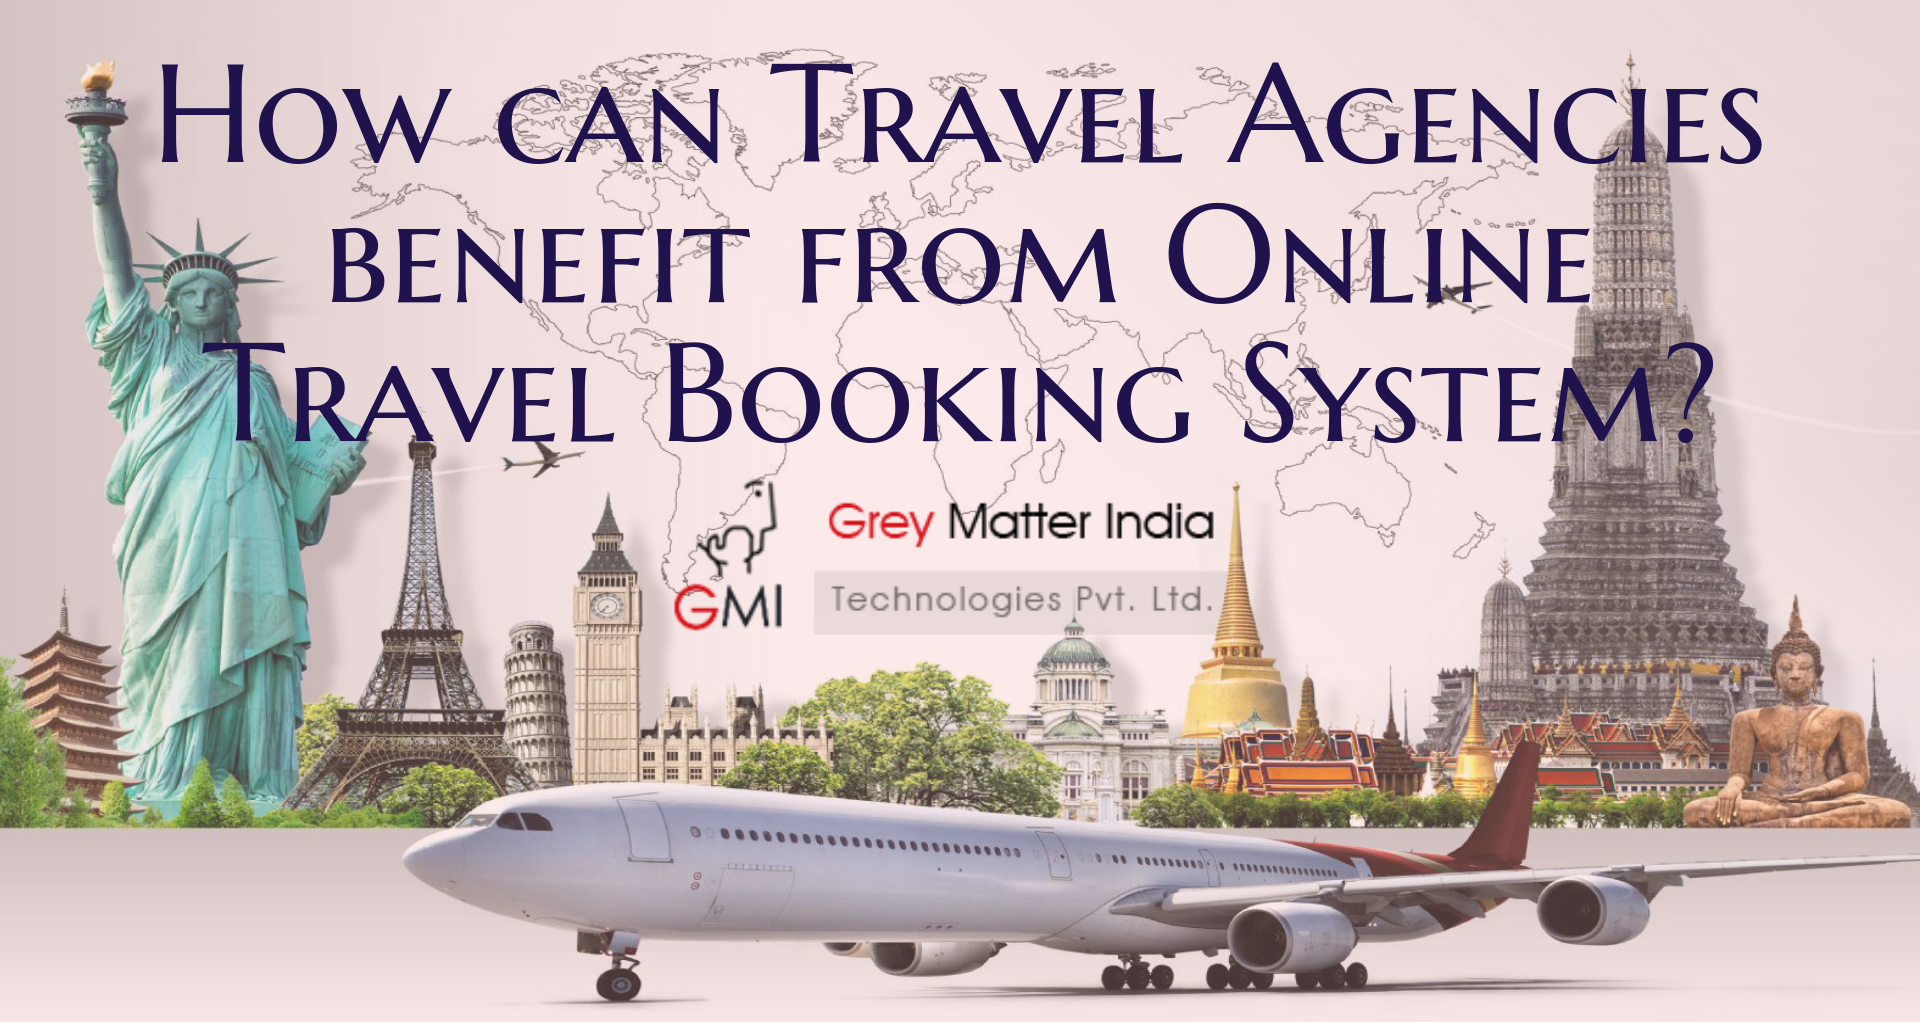 How can Travel Agencies benefit from Online Travel Booking System